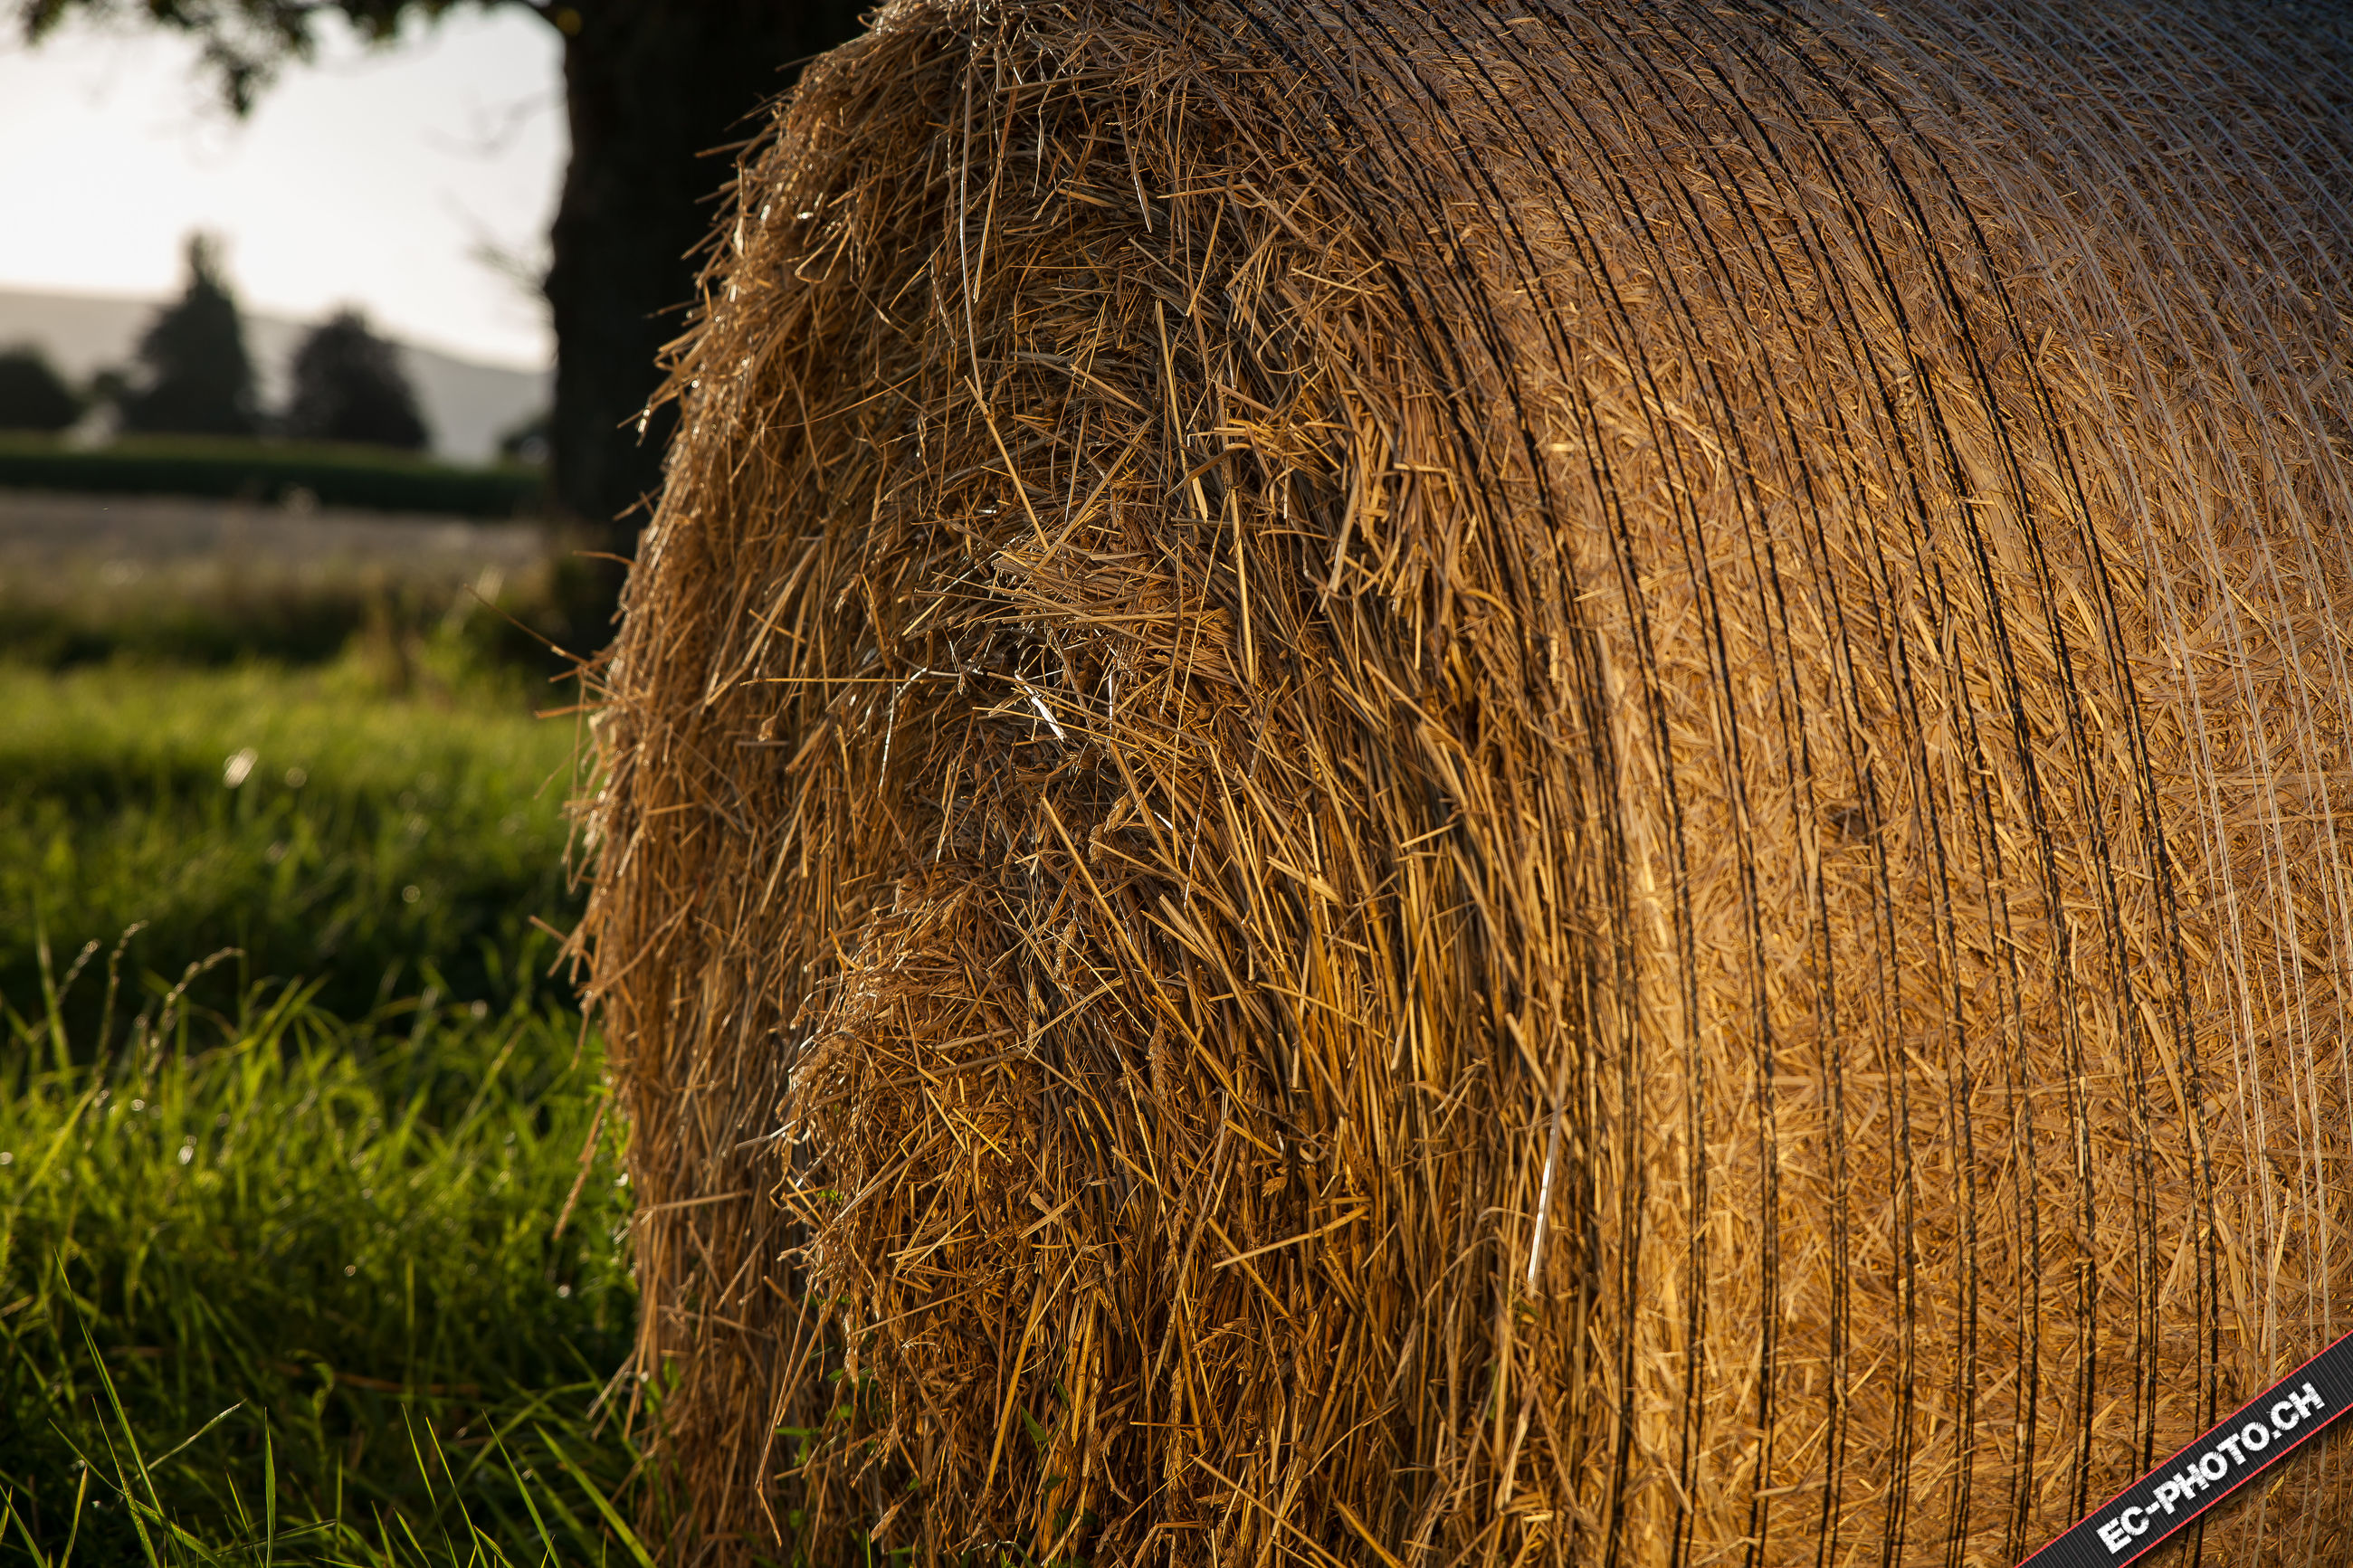 close-up, detail, focus on foreground, brown, field, growth, rural scene, day, tranquility, nature, outdoors, beauty in nature, grassy, no people, extreme close-up, tranquil scene, scenics